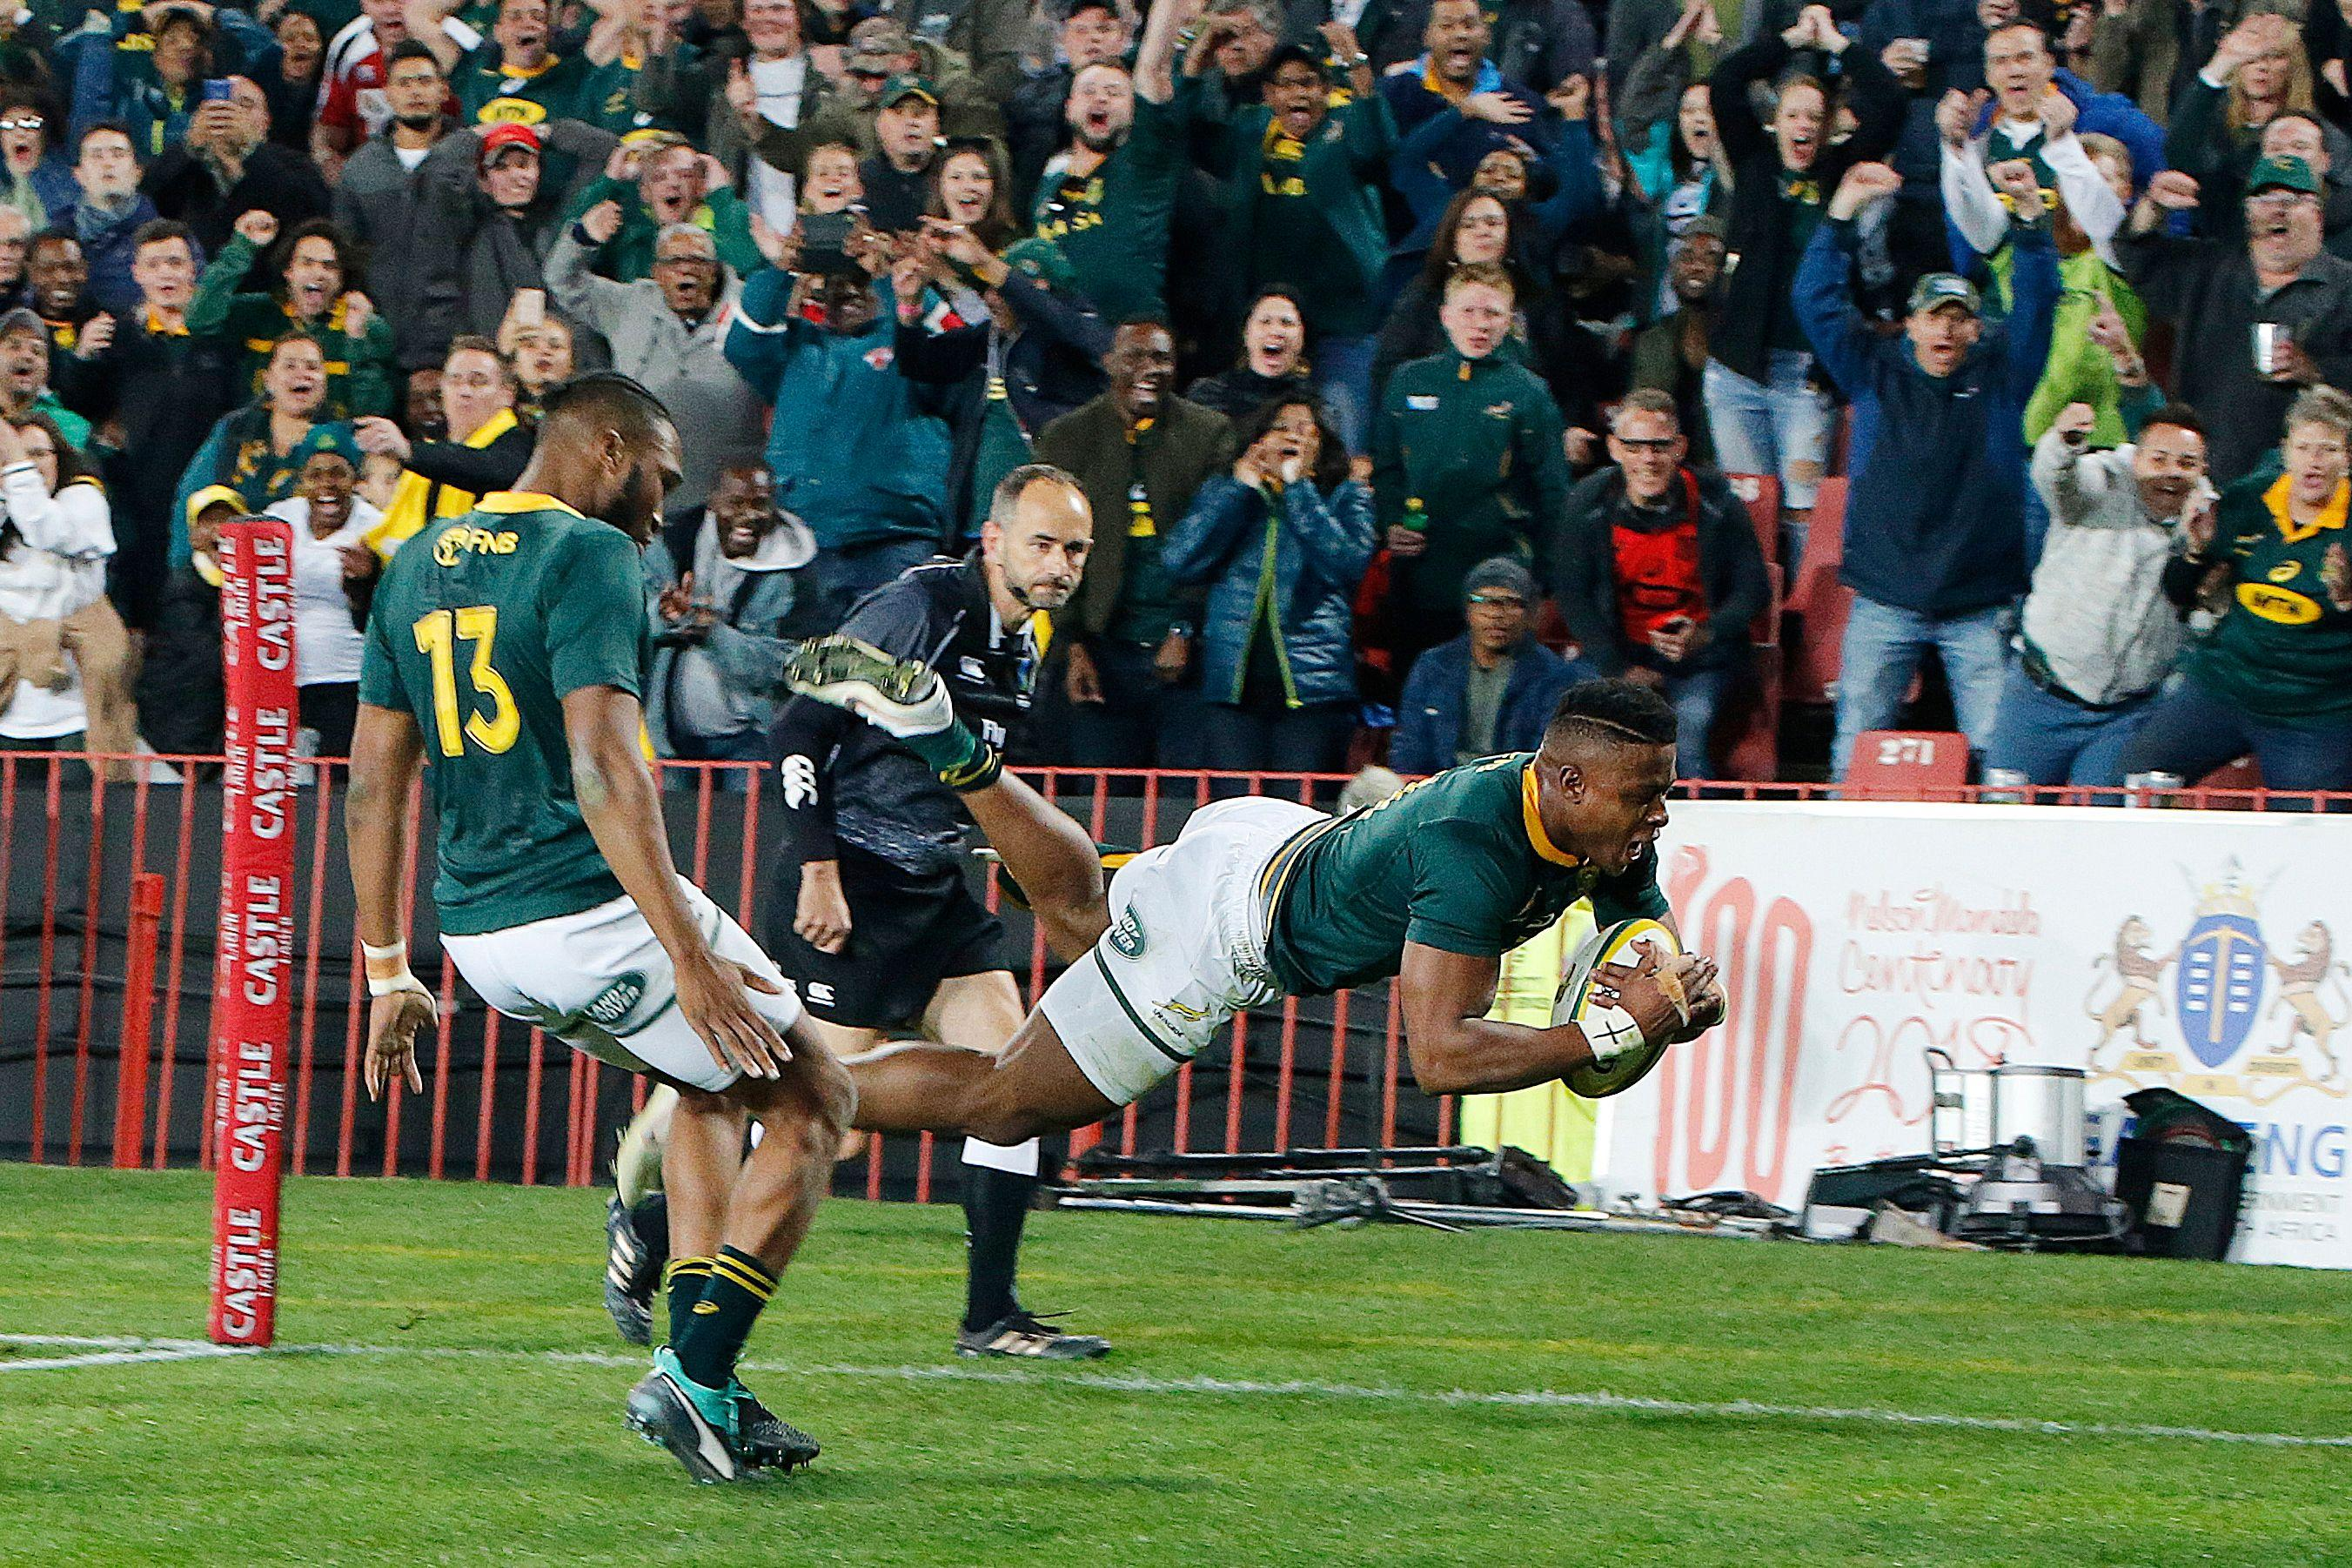 Aphiwe Dyanti went over for a try in the 64th minute for South Africa